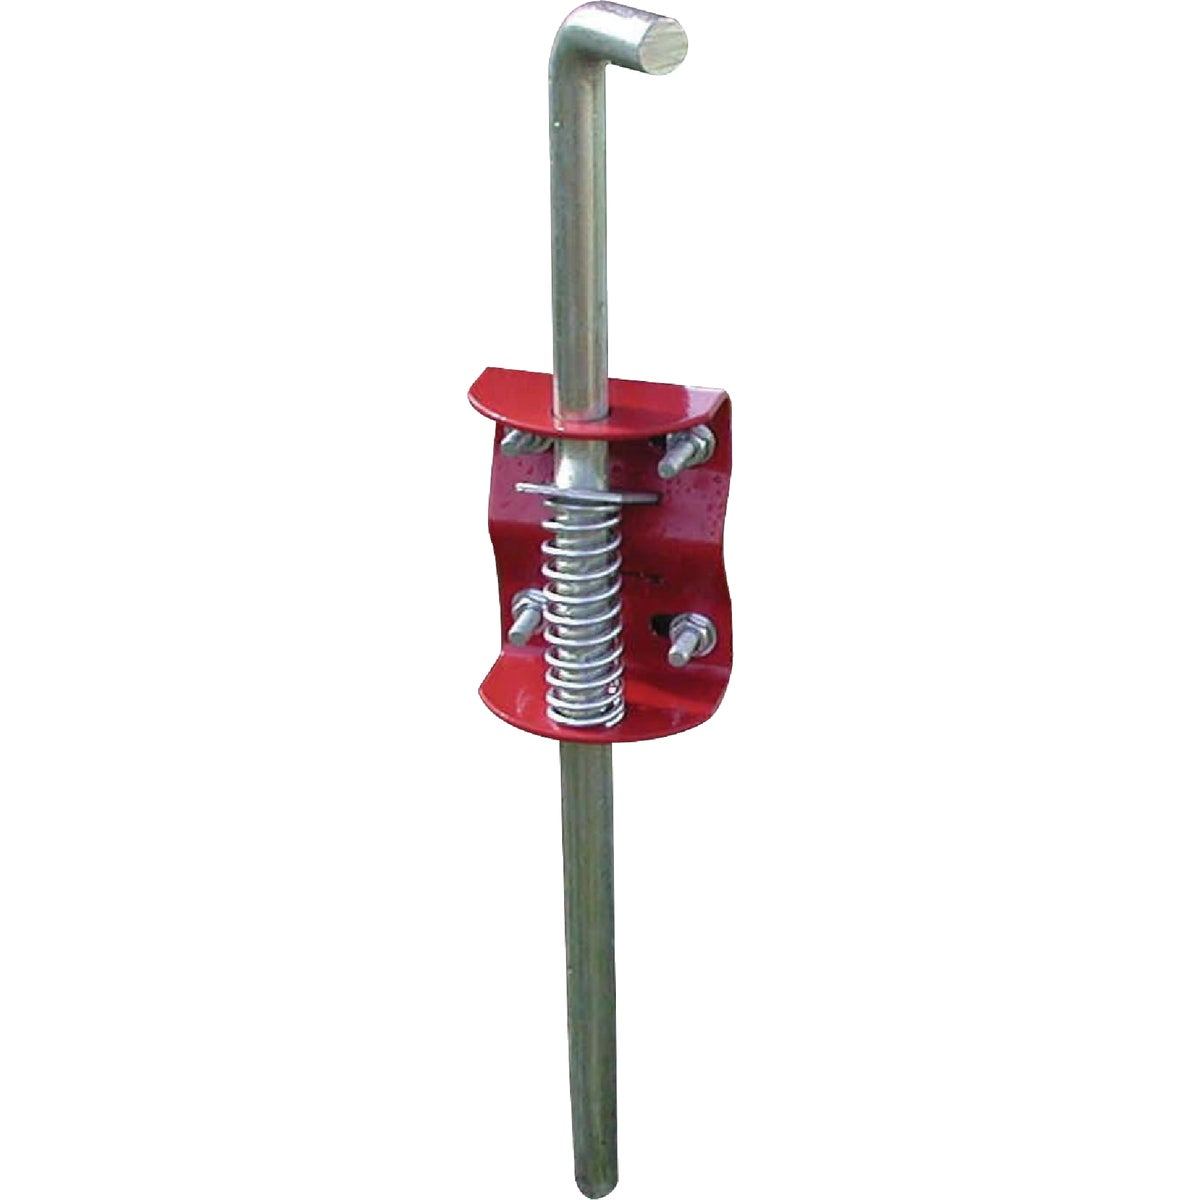 "1-3/4-2"" GATE ANCHOR KIT"